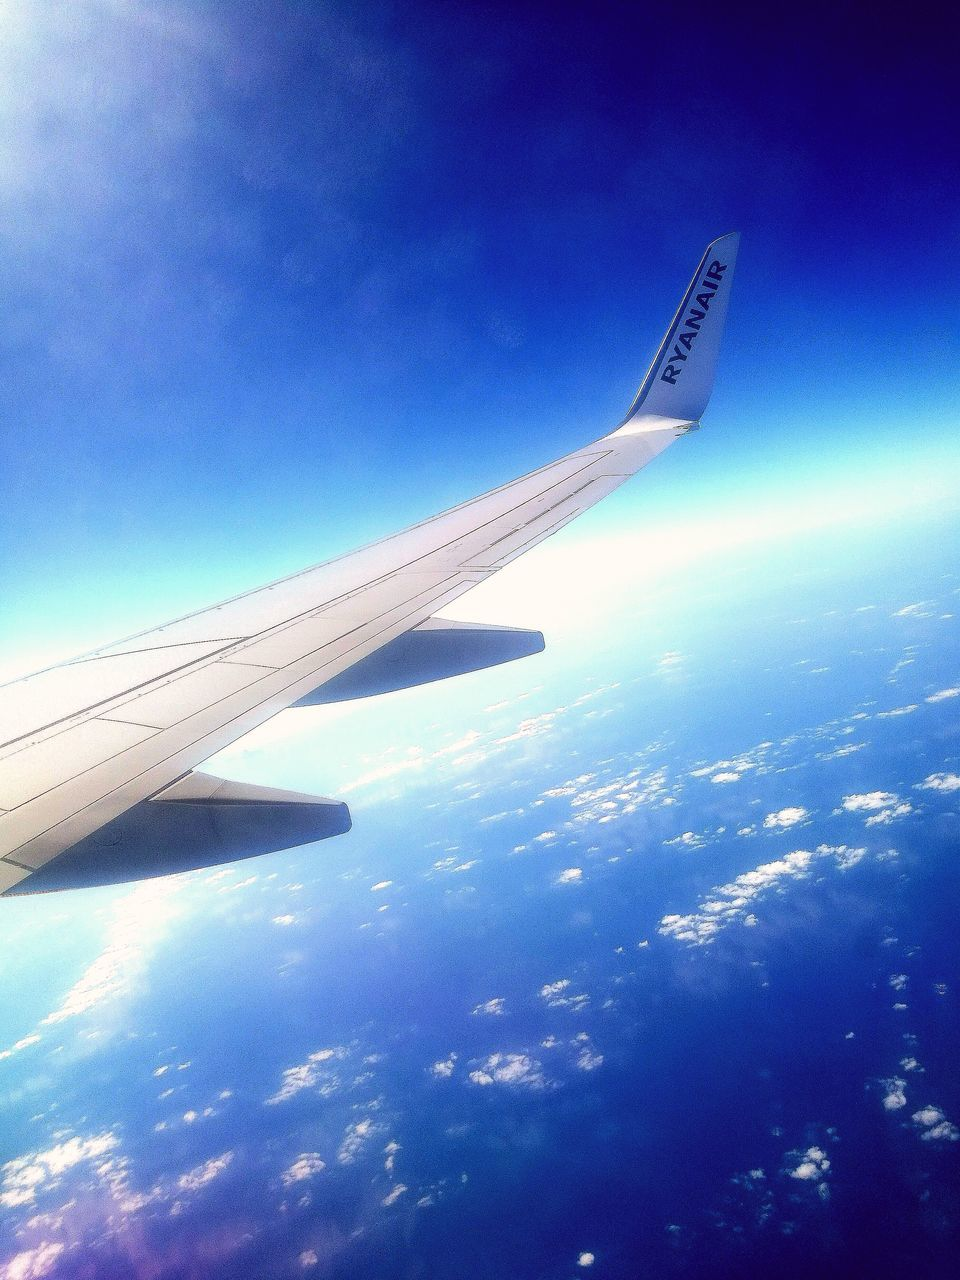 blue, airplane, aerial view, transportation, airplane wing, journey, sky, nature, no people, day, travel, outdoors, air vehicle, beauty in nature, scenics, flying